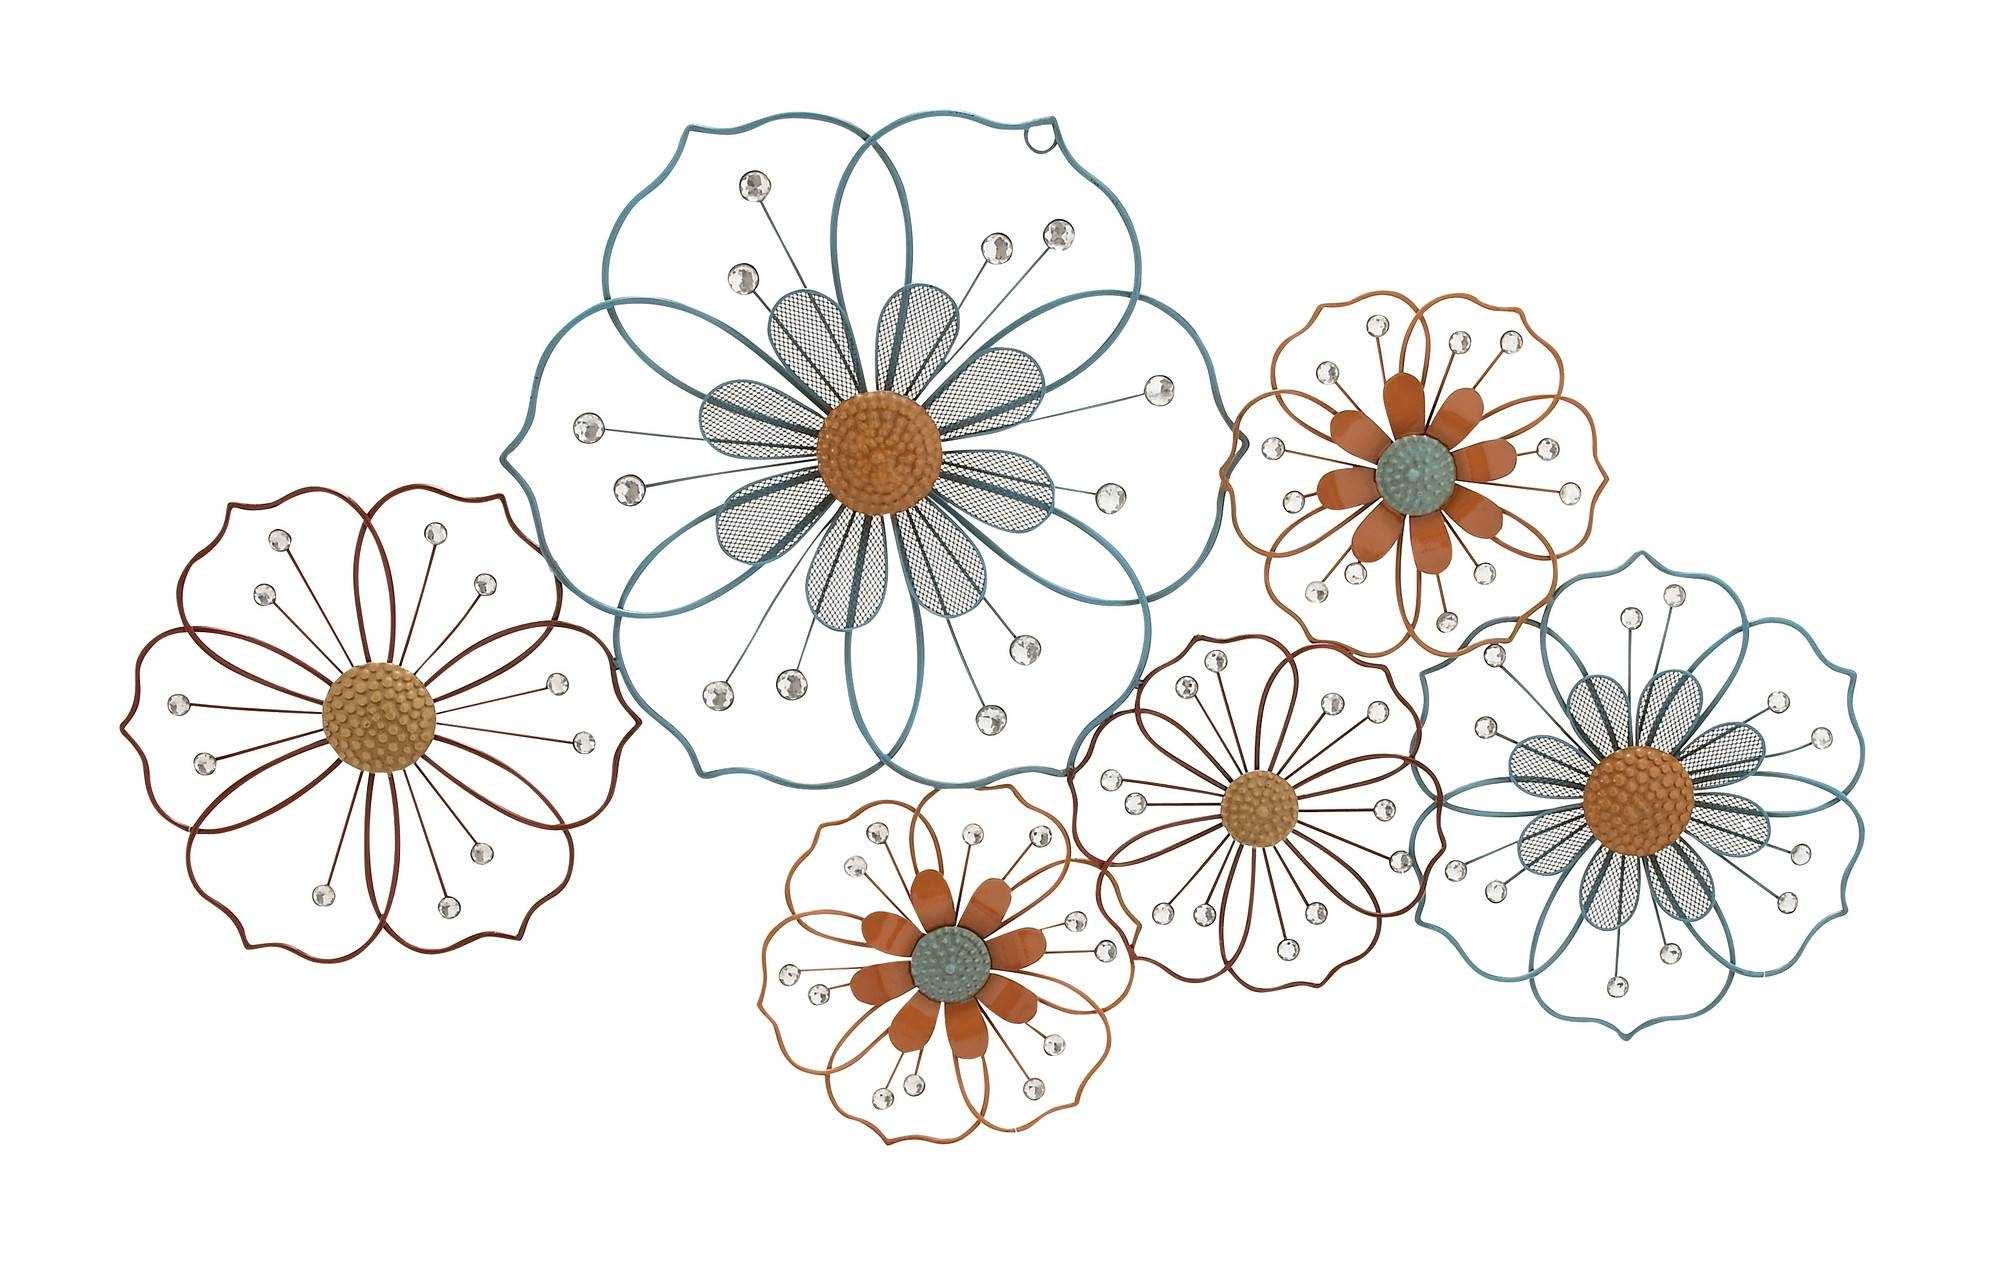 Wall Decor: Flower Silhouettes Floral Large Metal Wall Art Combine Regarding Most Up To Date Tall Metal Wall Art (View 17 of 20)